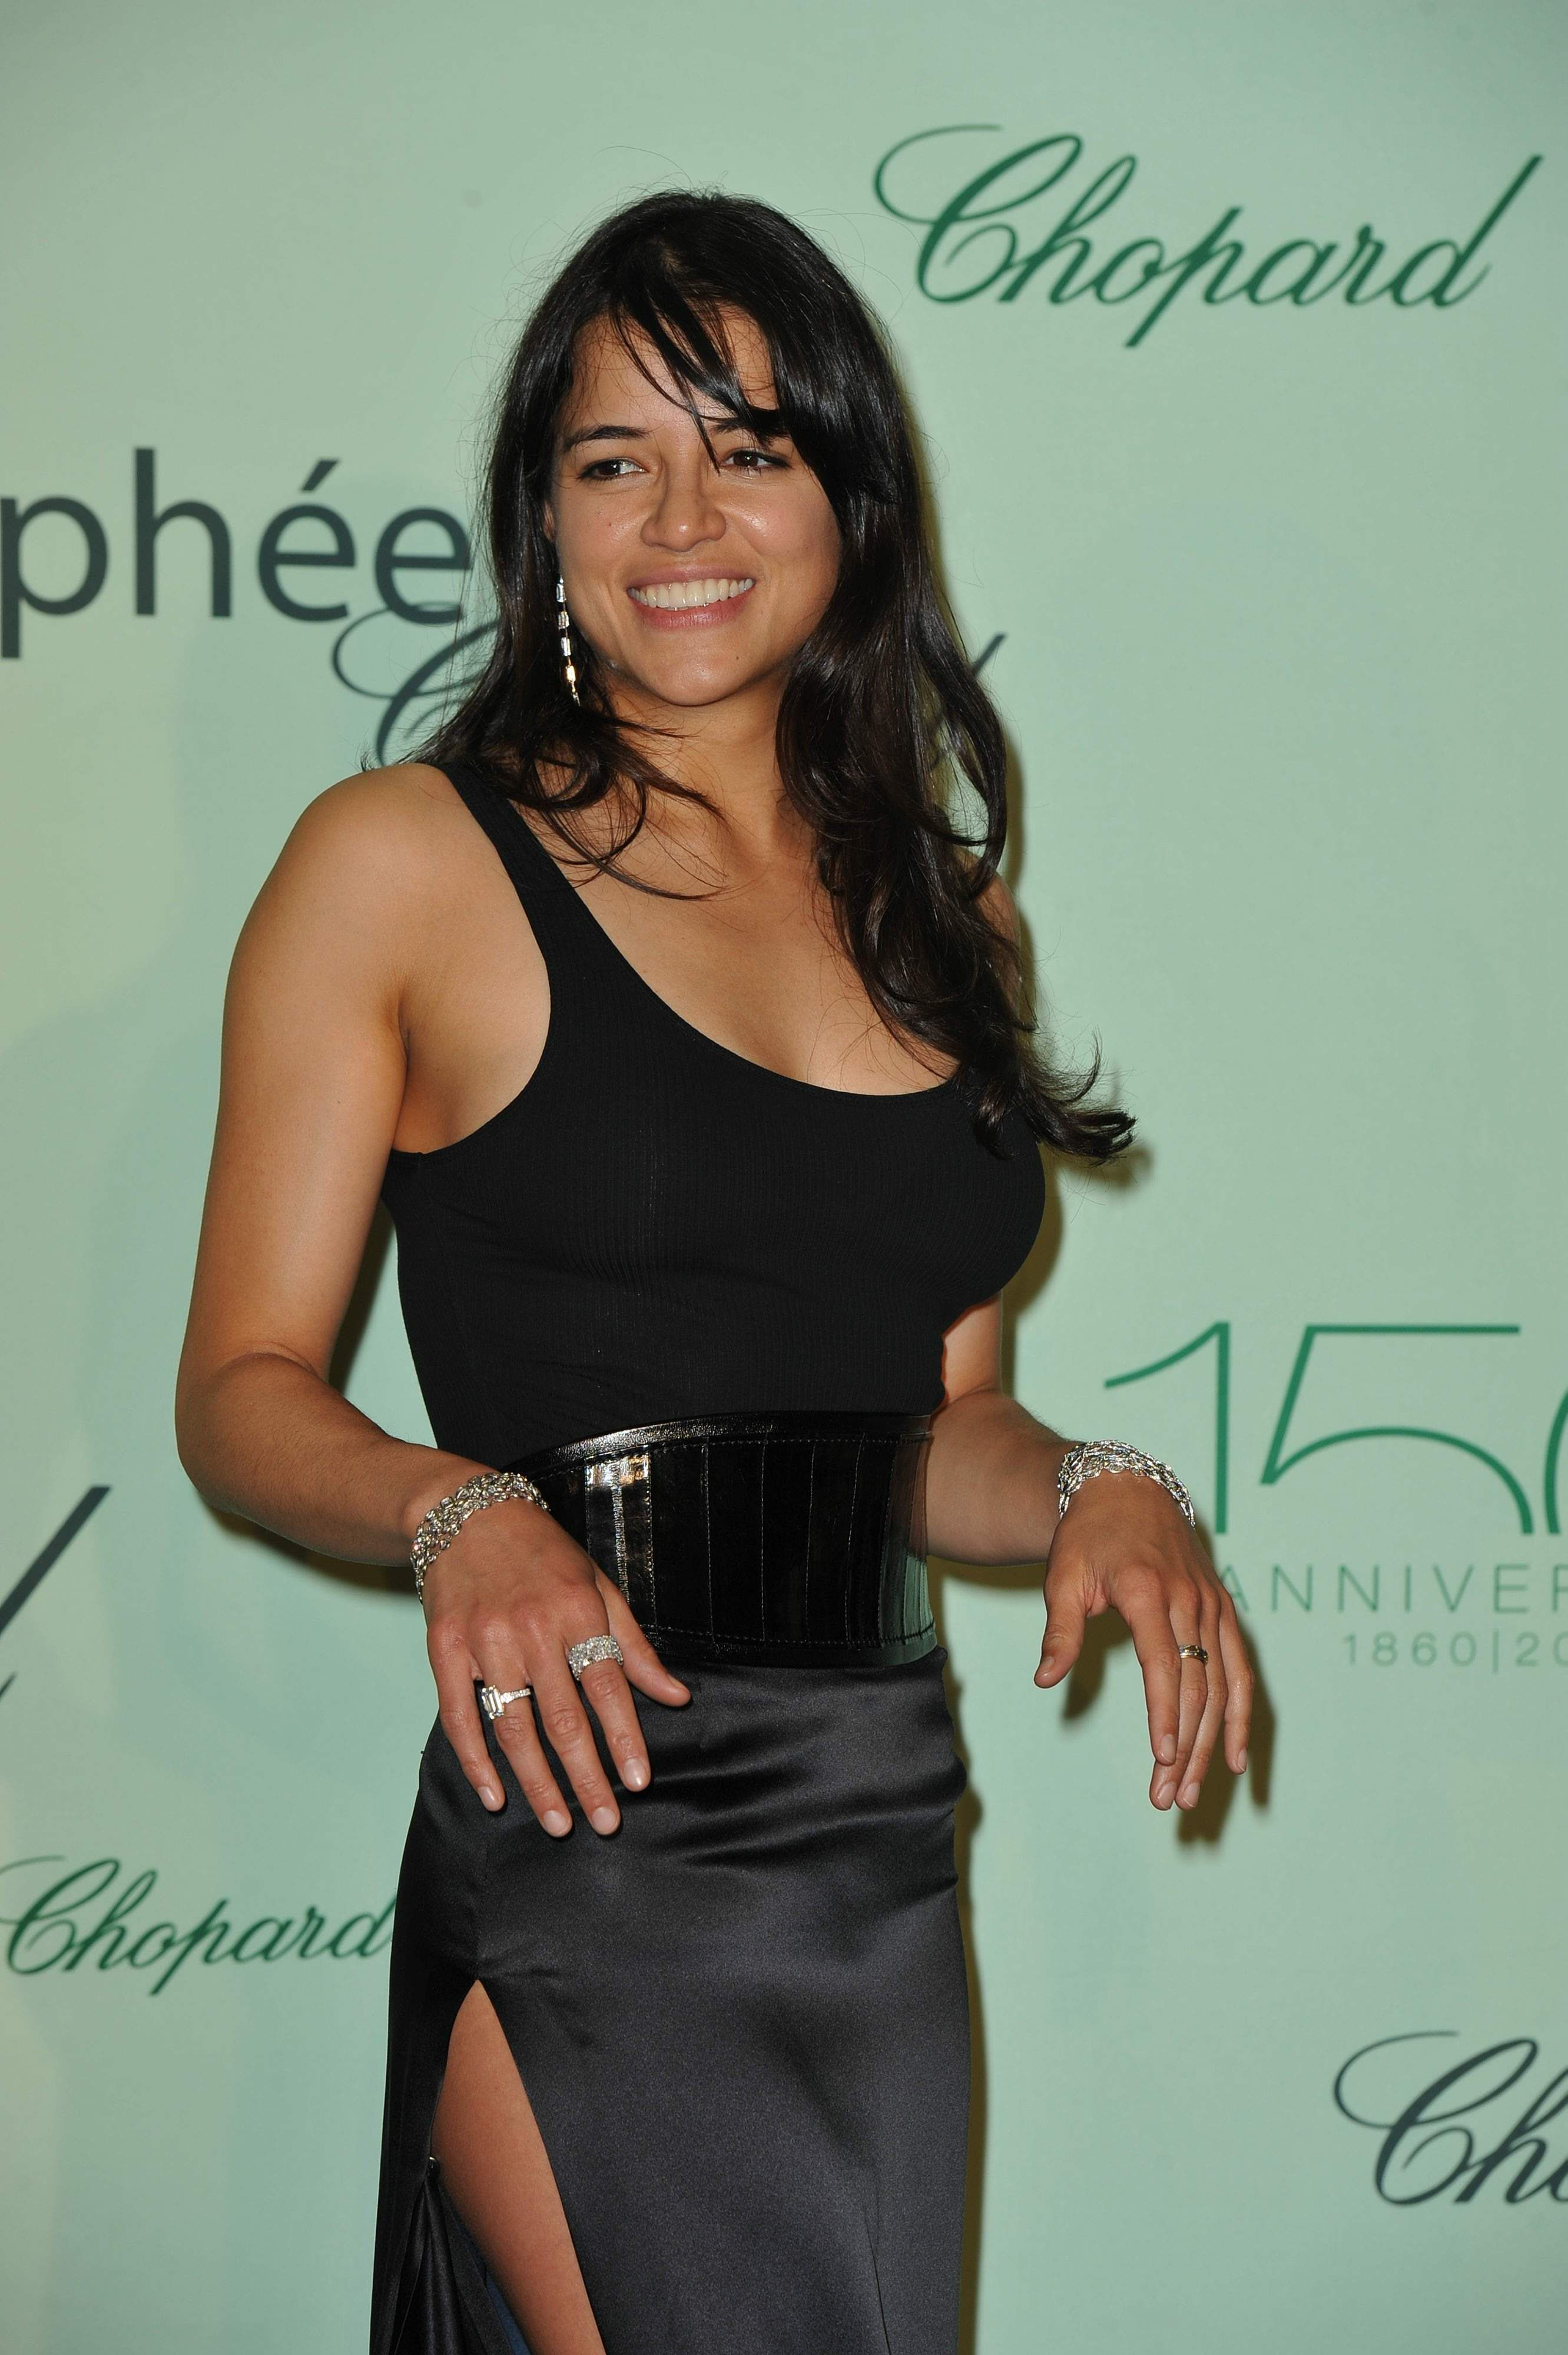 Michelle Rodriguez looks just amazing in this picture. I don't think we'll see her looking at hot as this should my novel become a movie, but maybe at the Oscars she'll look just as amazing.